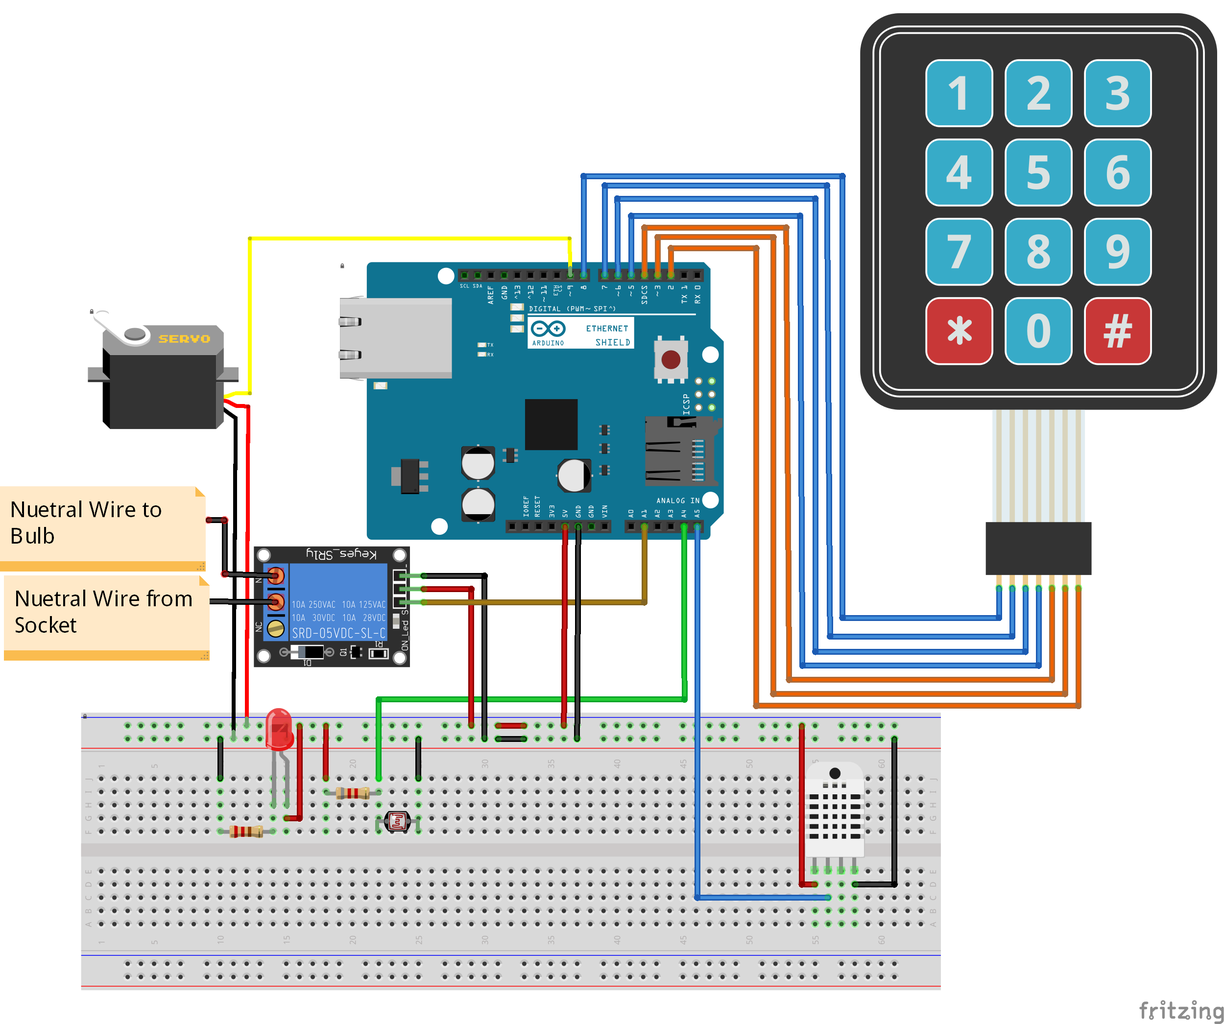 Connecting Relay and Bulb